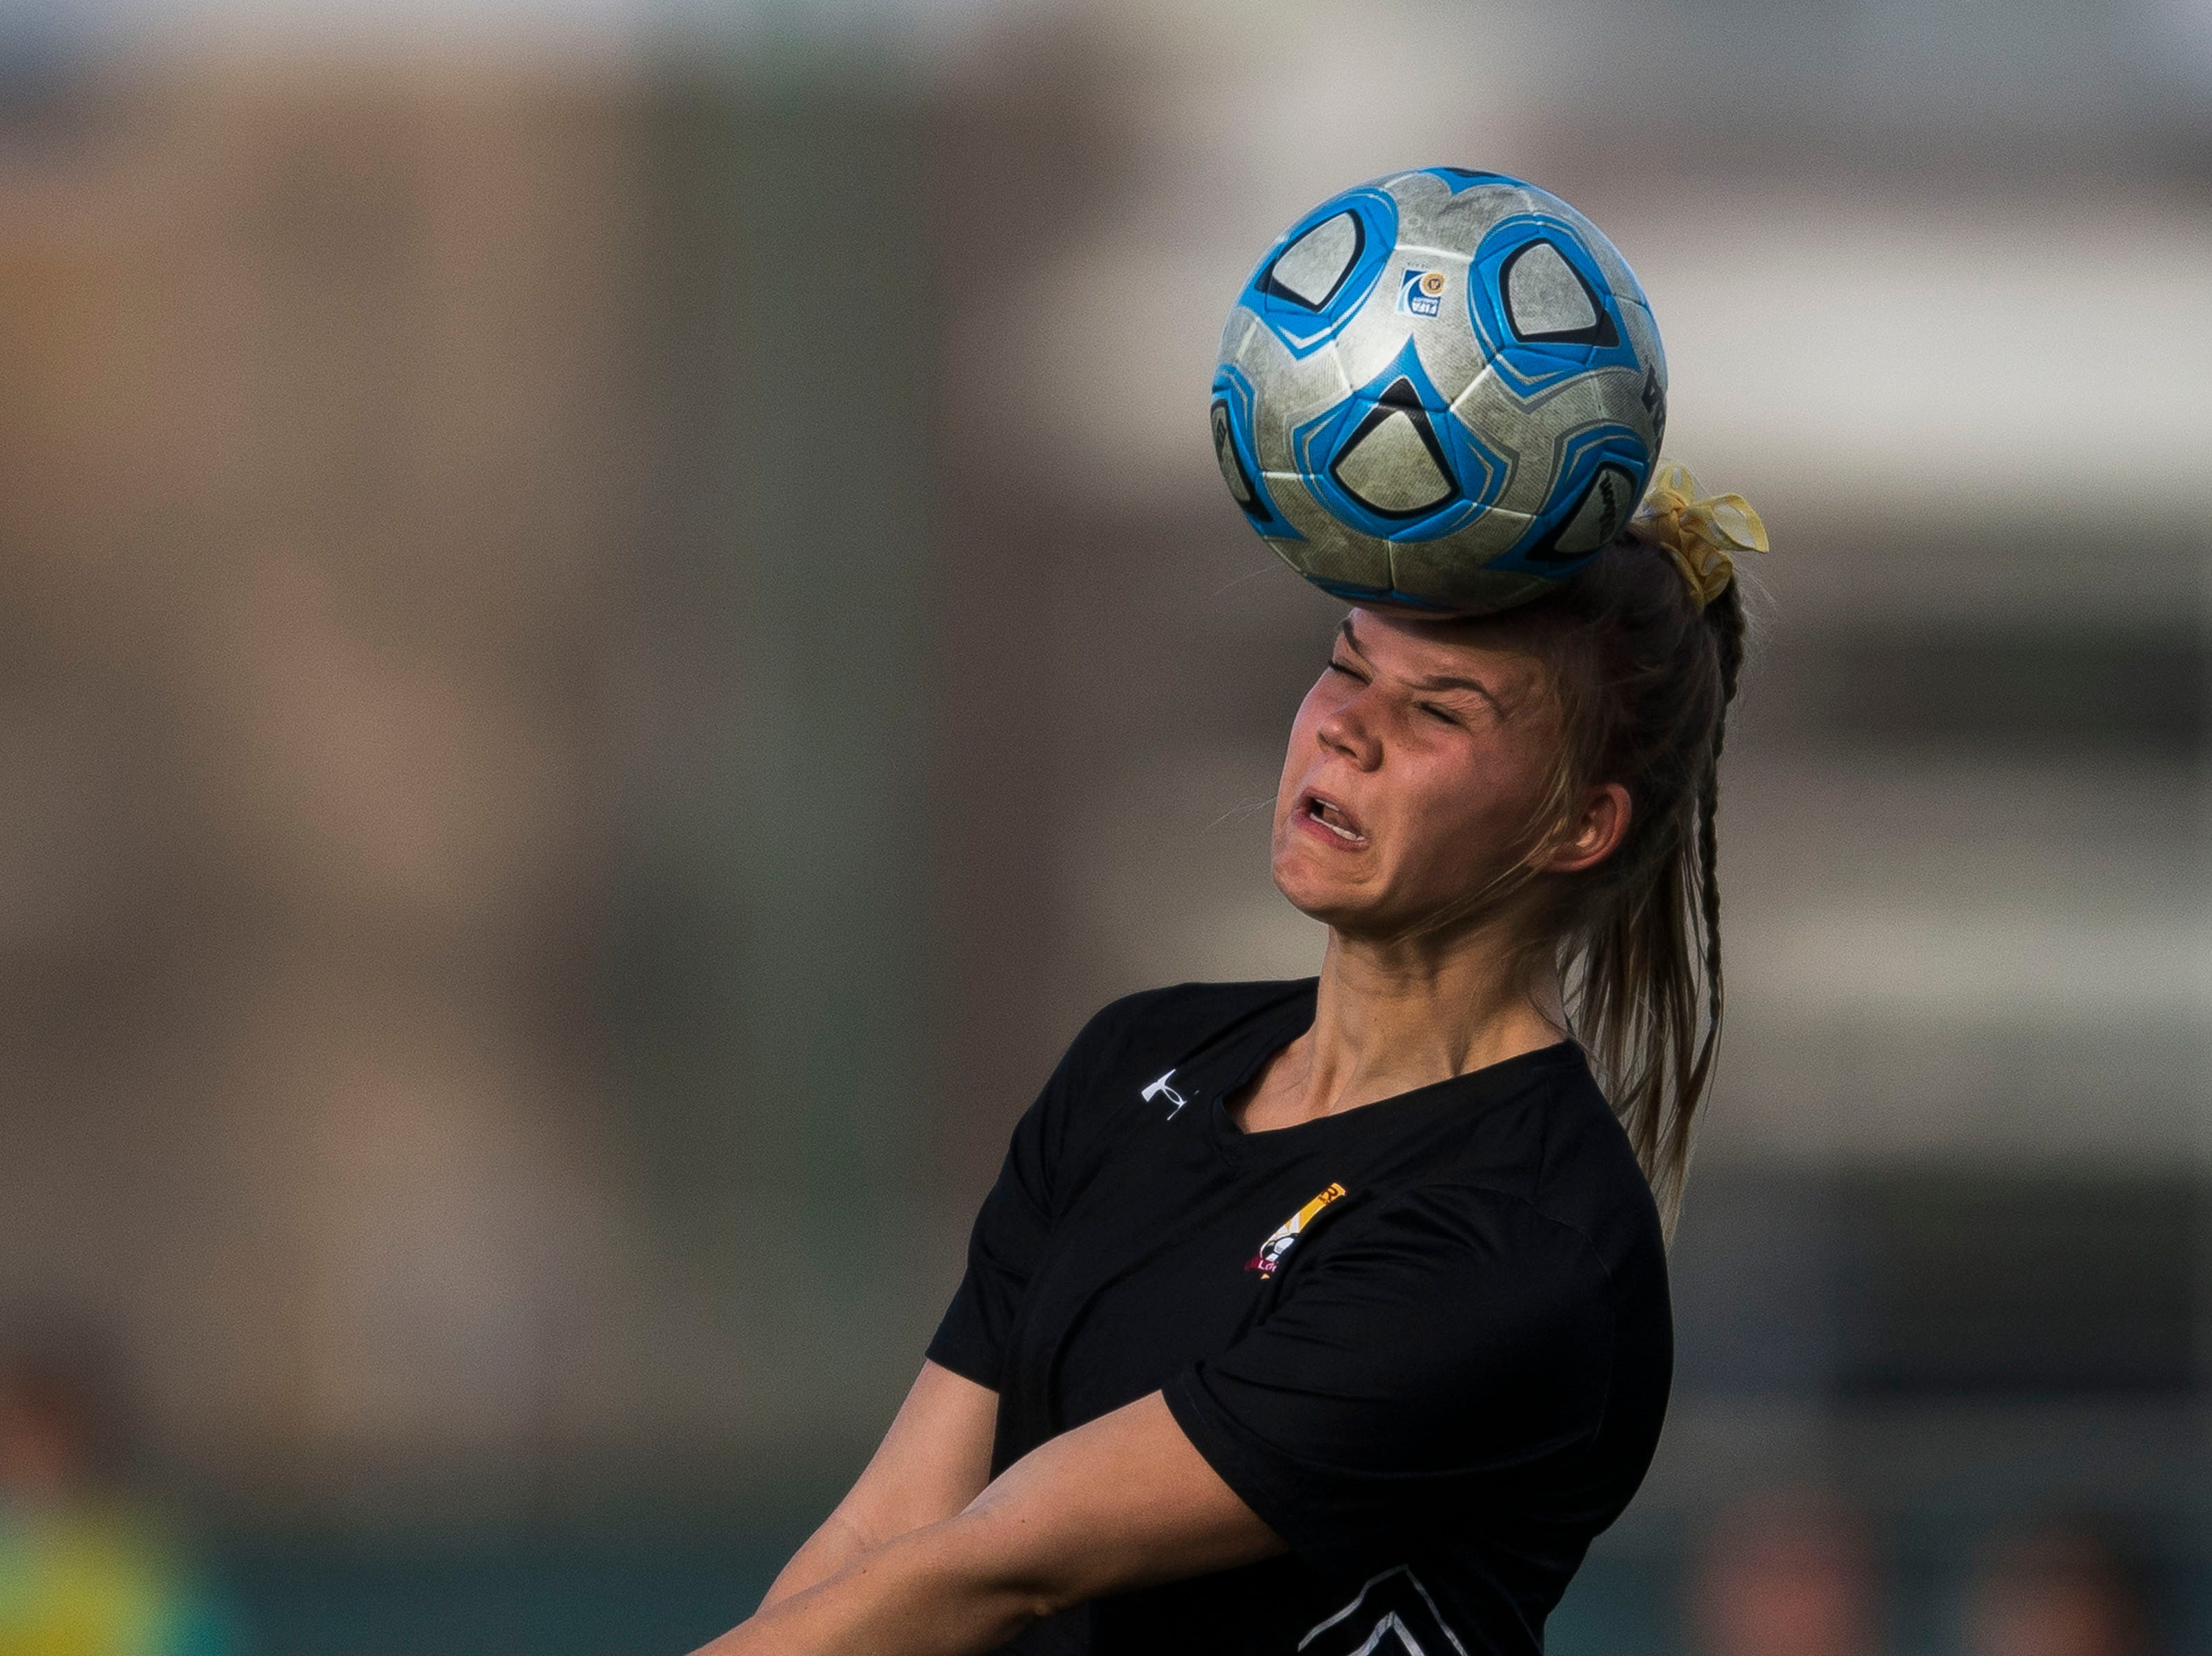 Rocky Mountain High School senior Regan Ostler (2) heads the ball during a game against Fossil Ridge High School on Friday, April 4, 2019, at Colorado State University's soccer field in Fort Collins, Colo.